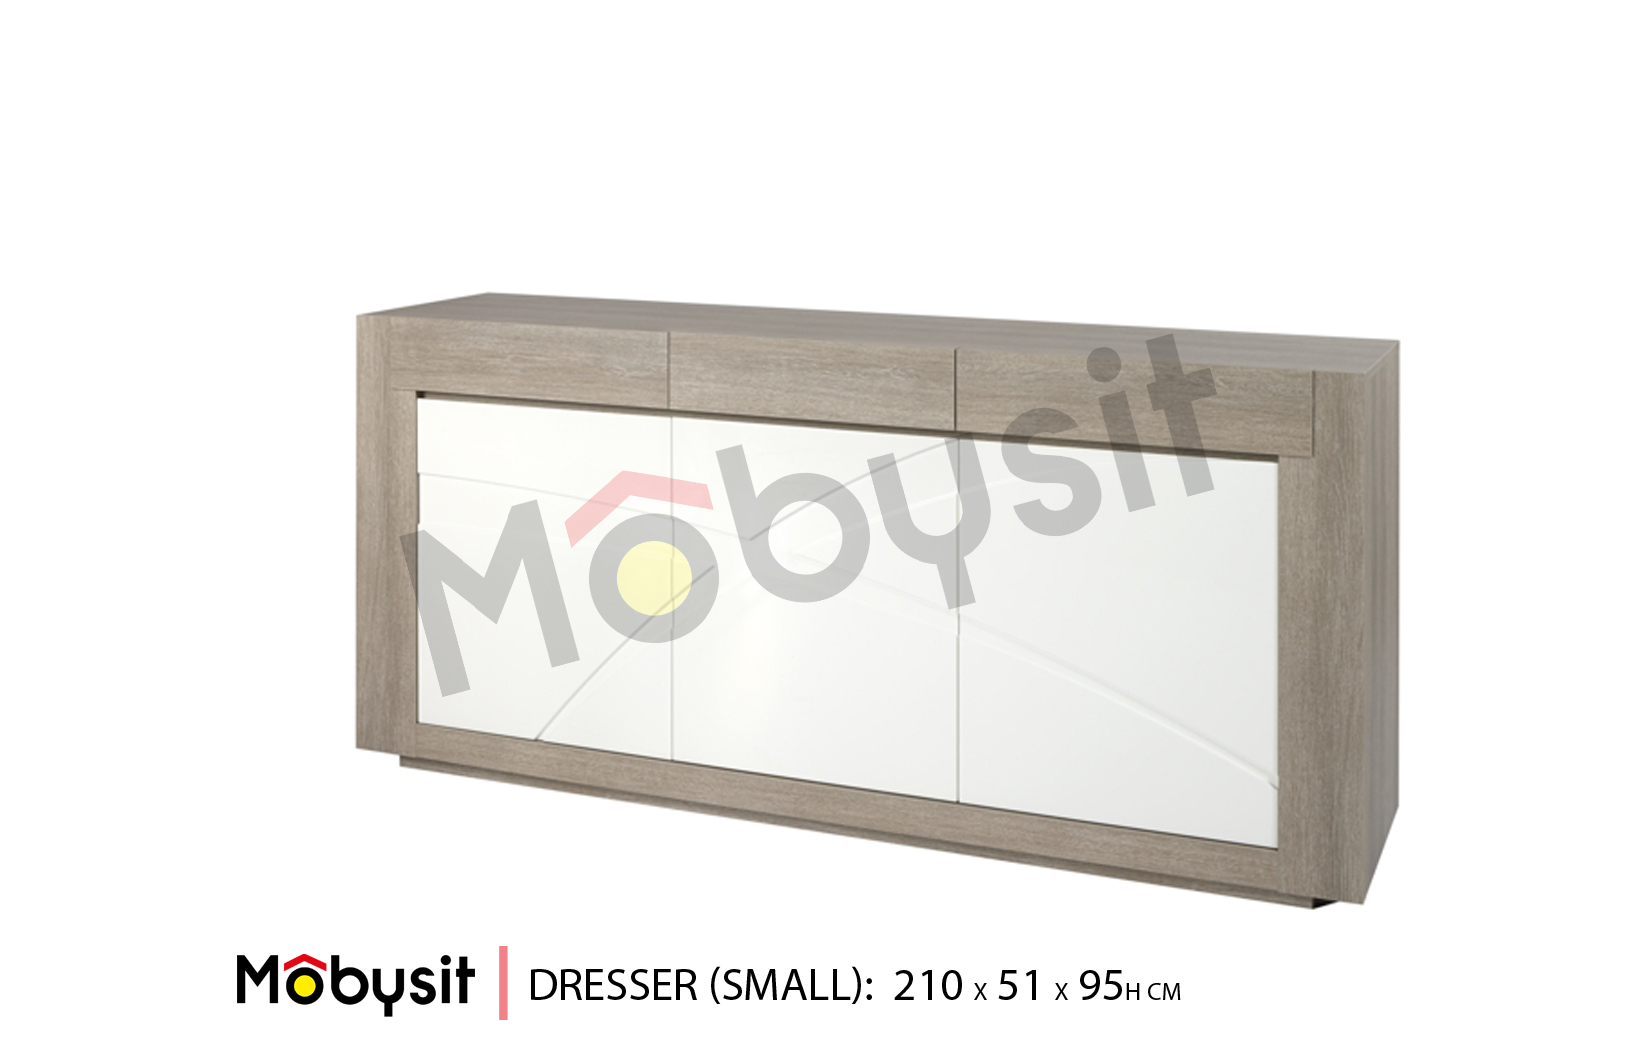 BIG Bauwens dressoir small 210